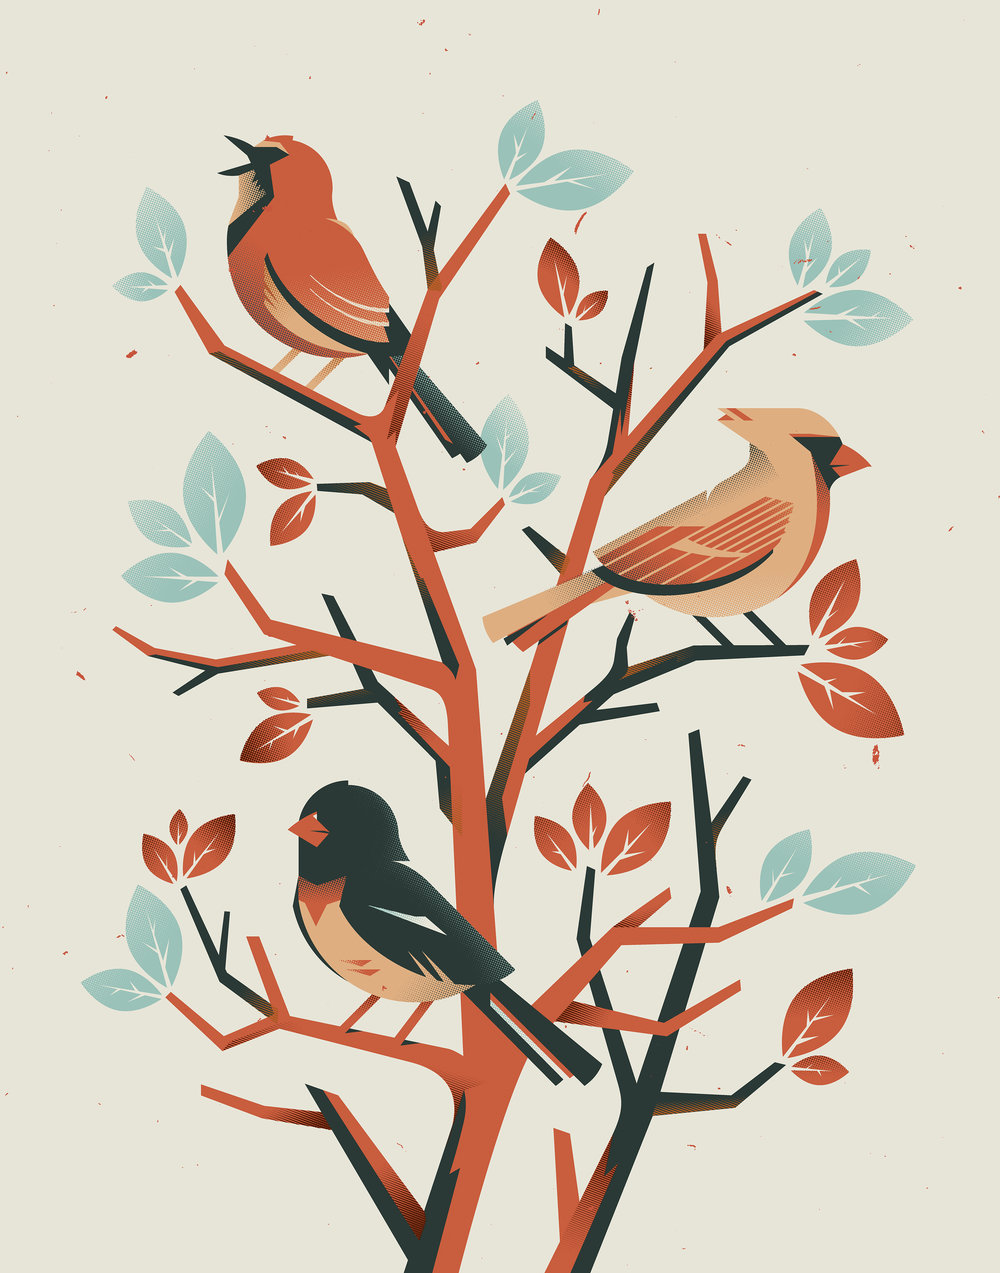 birds_new_colorway2.jpg